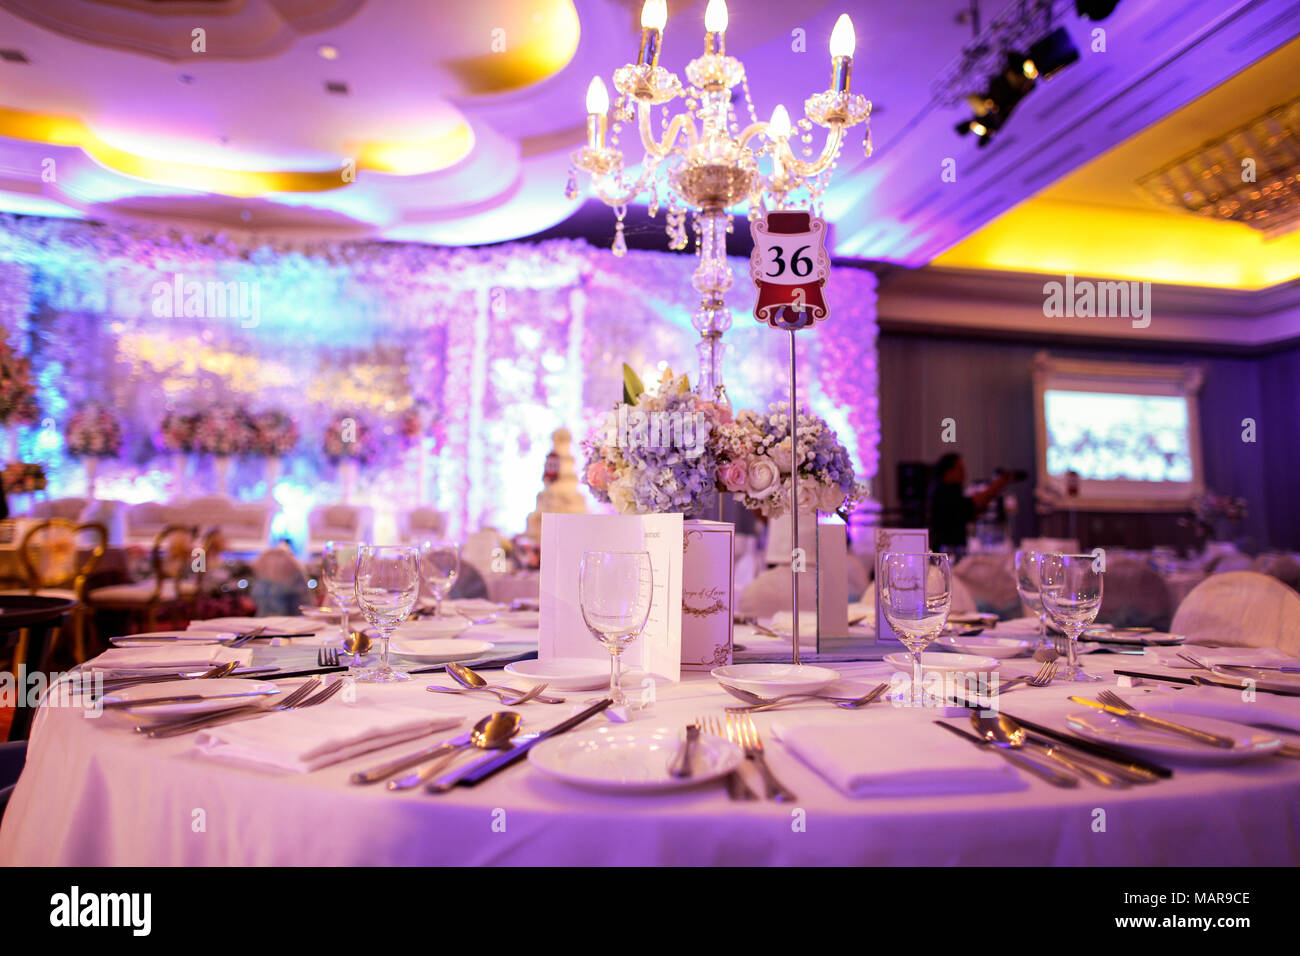 Decoration of formal event Stock Photo: 178762542 - Alamy